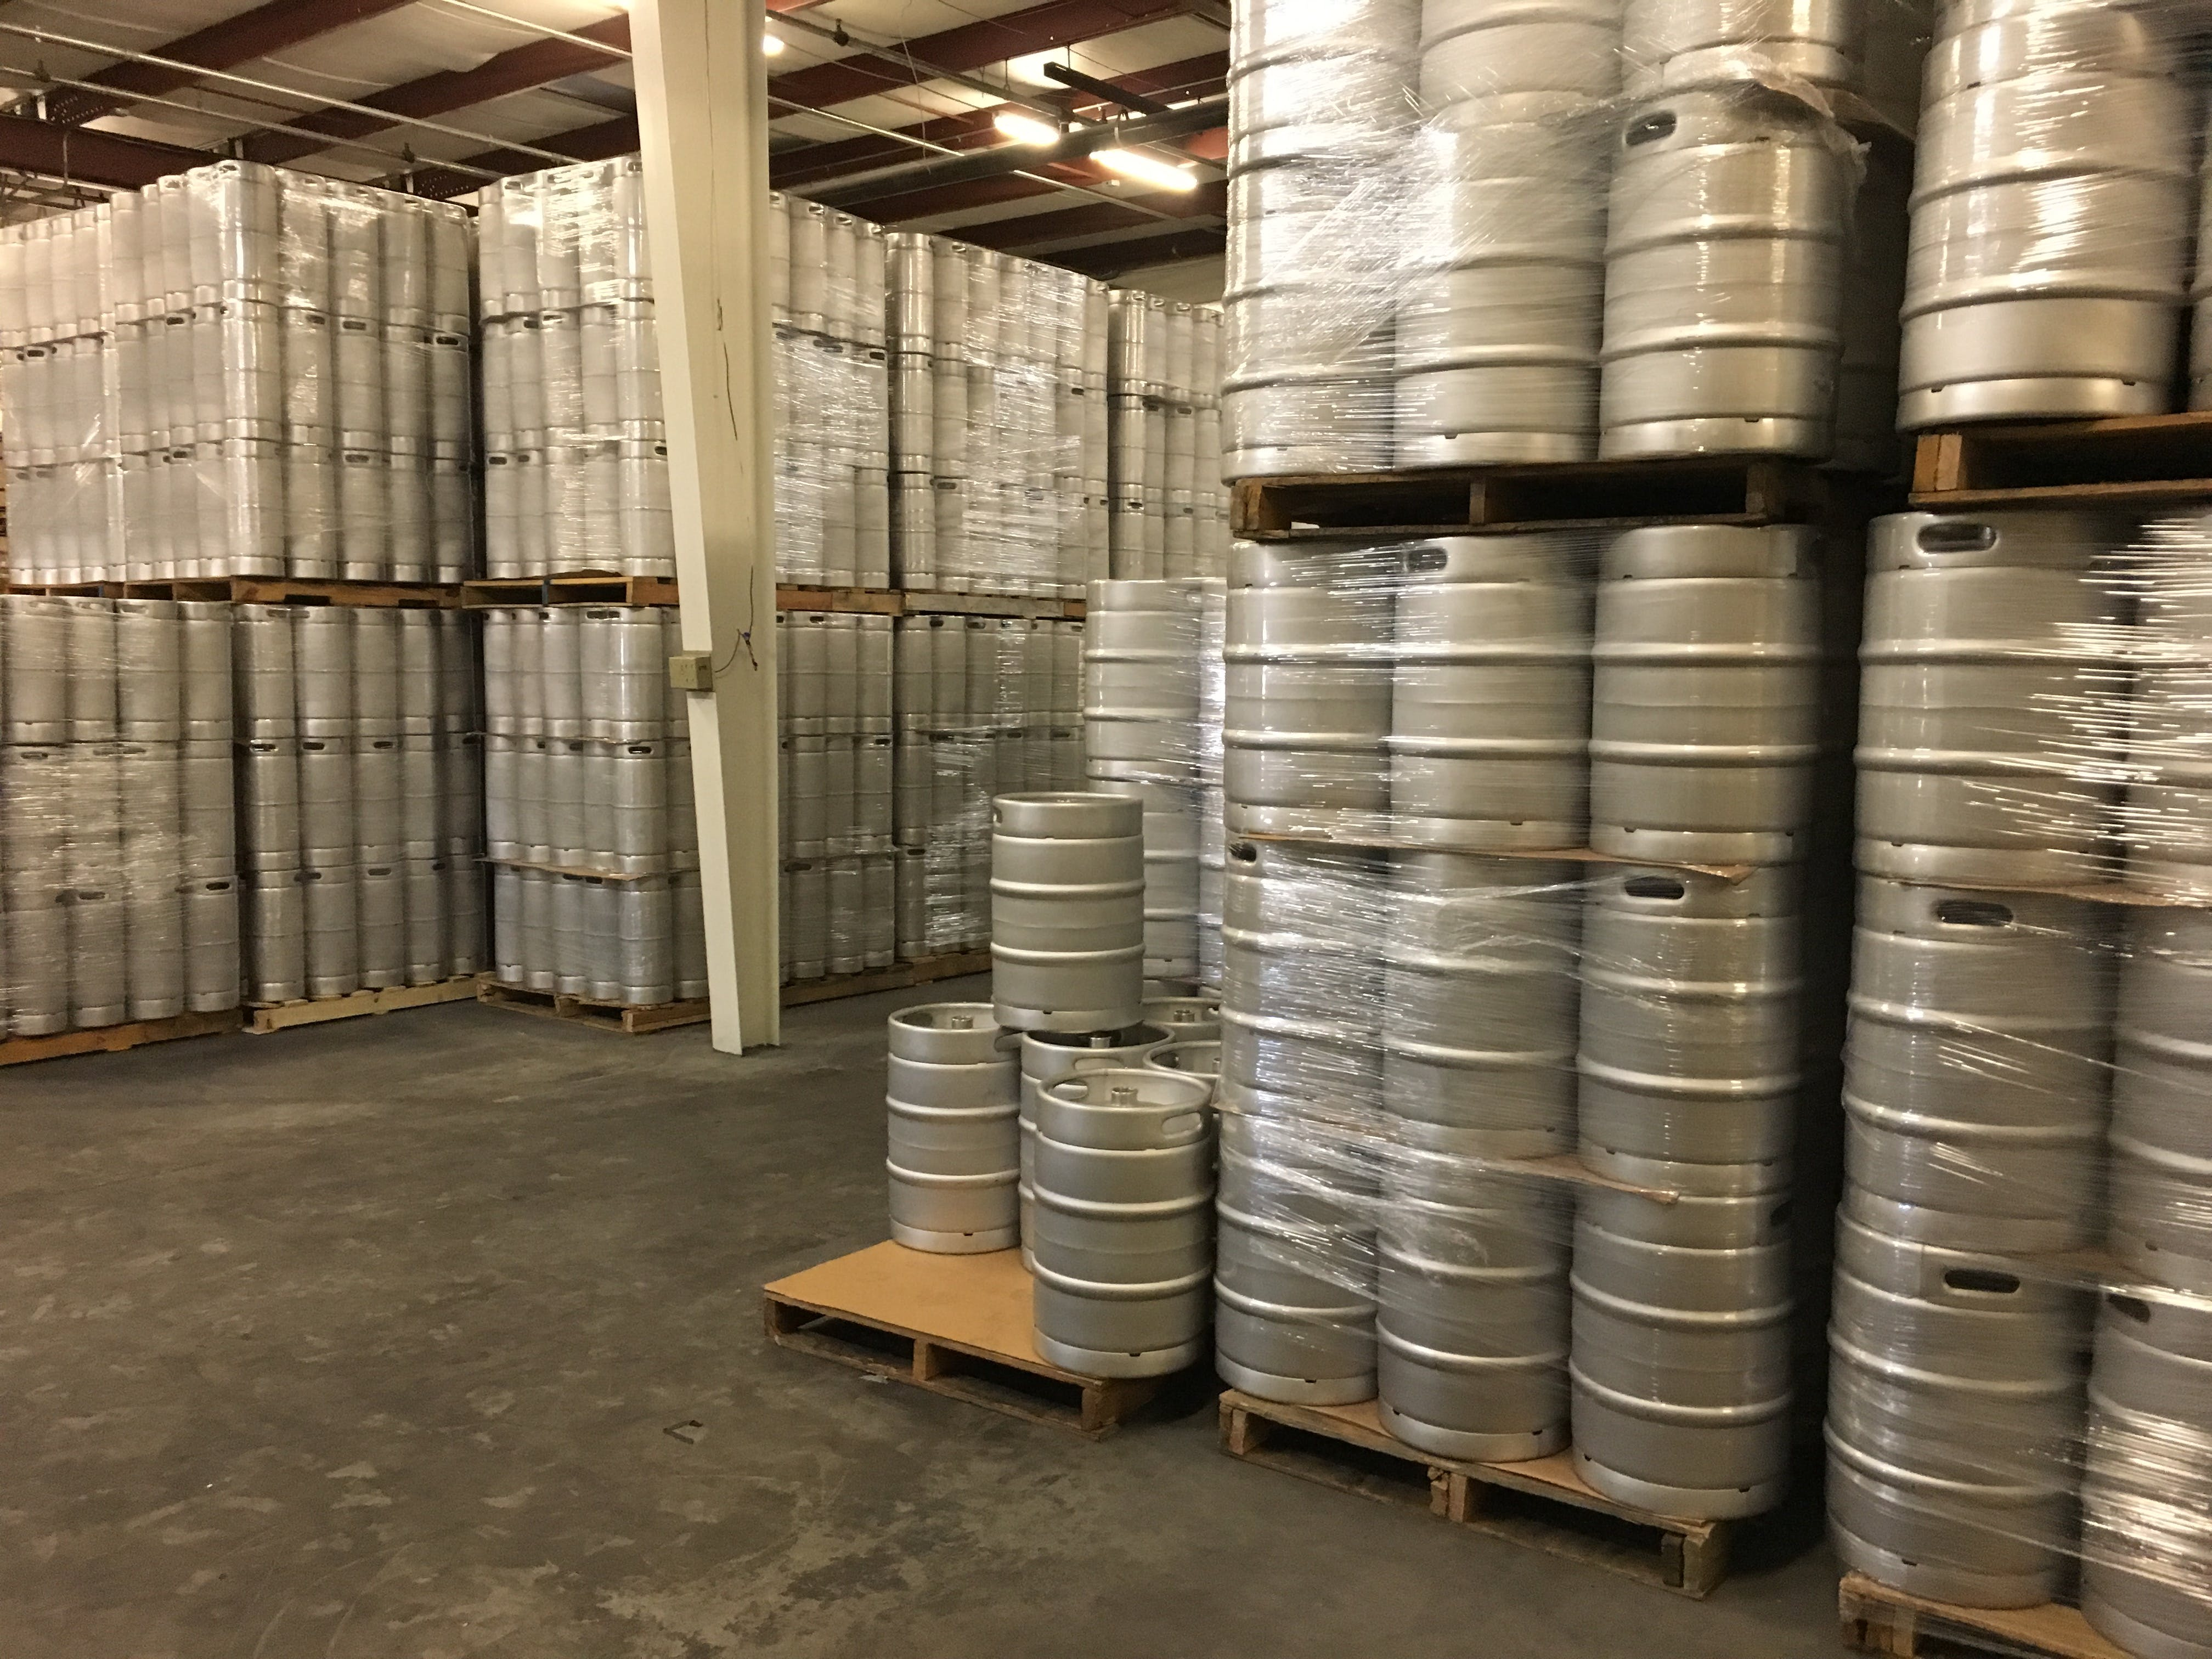 1/2, 1/4 and 1/6 Barrel Kegs Keg sold by InstantKegs.com